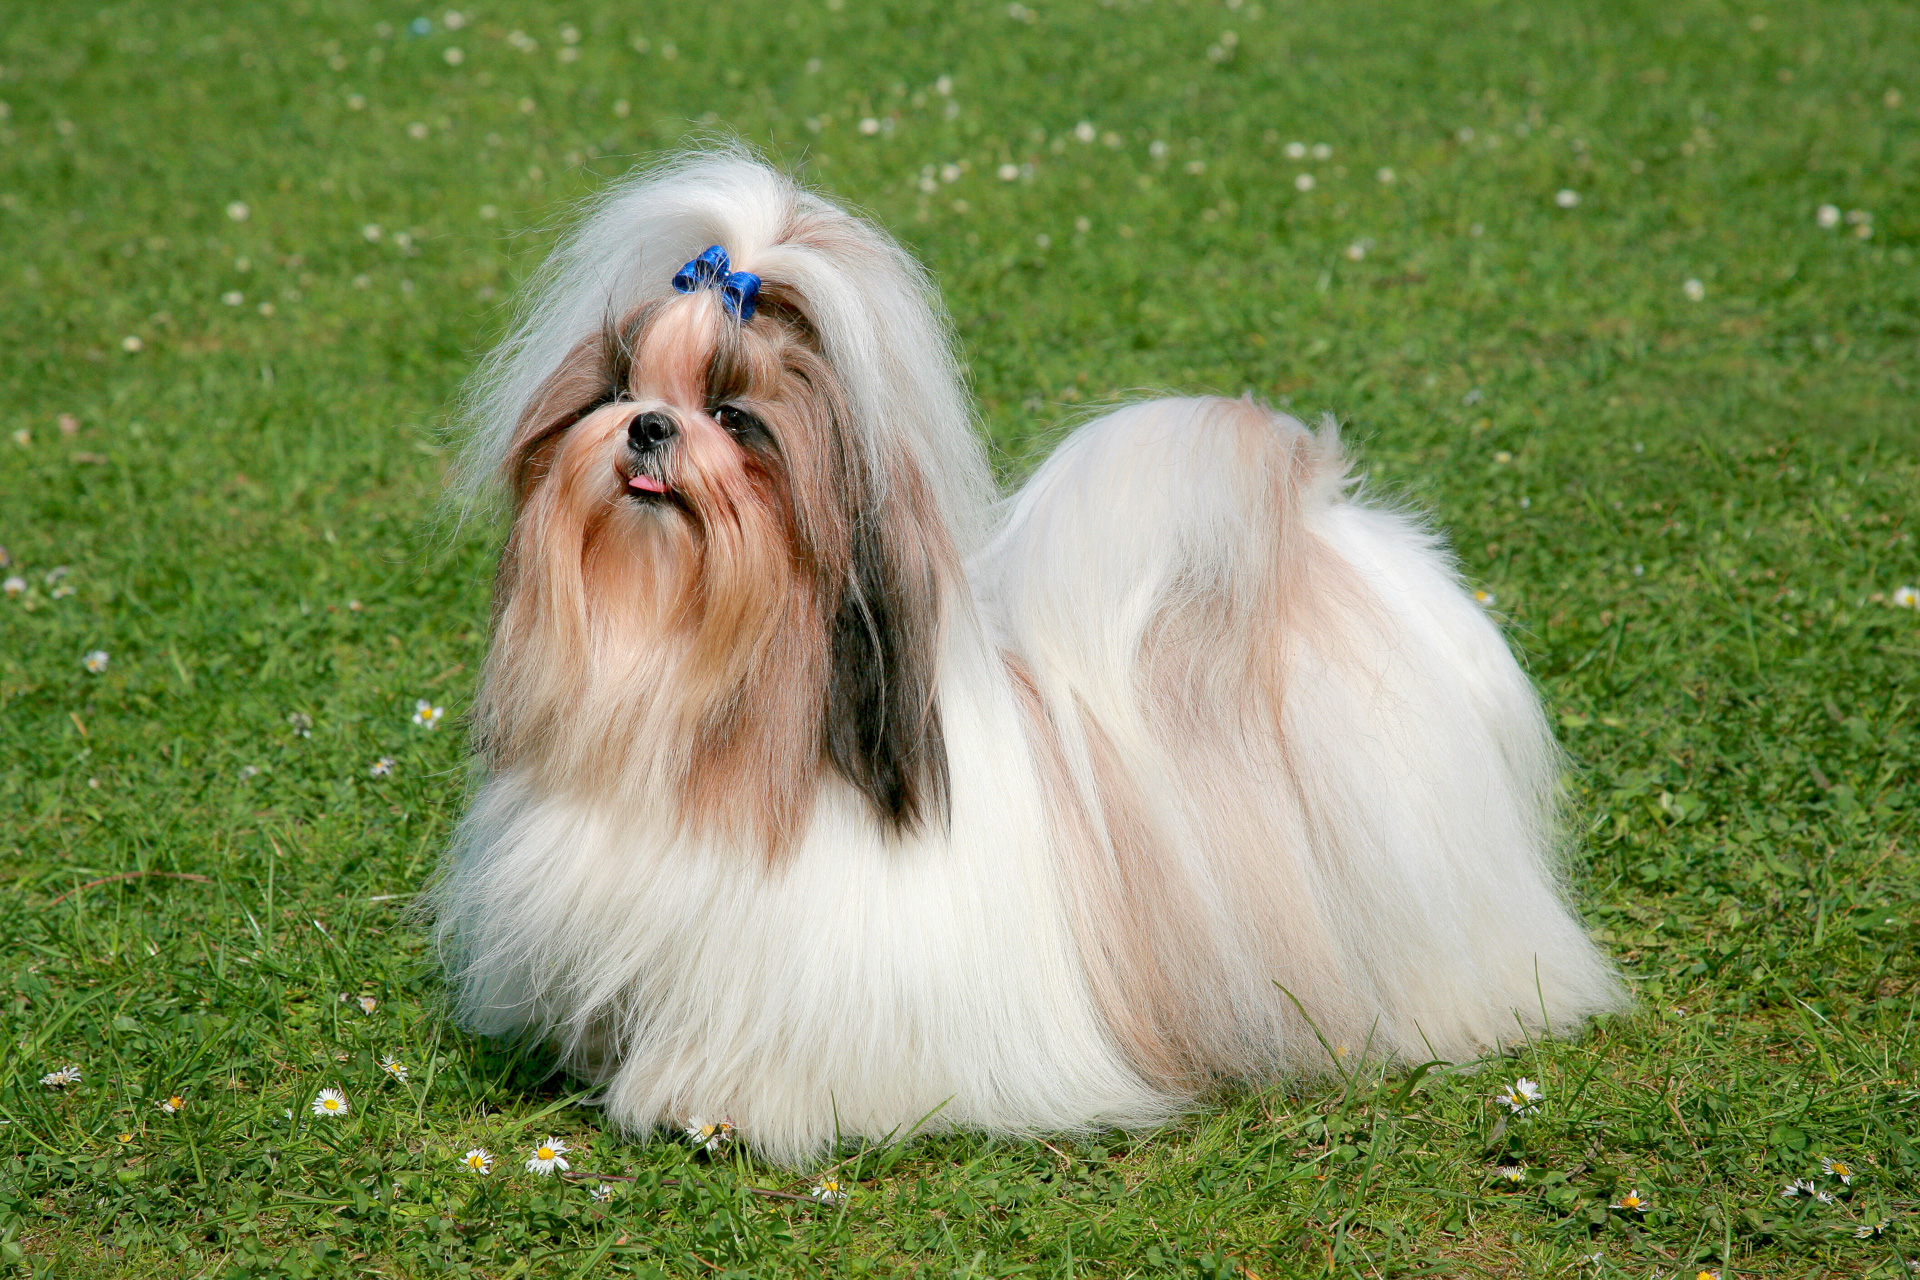 What Does A Lhasa Apso Dog Look Like